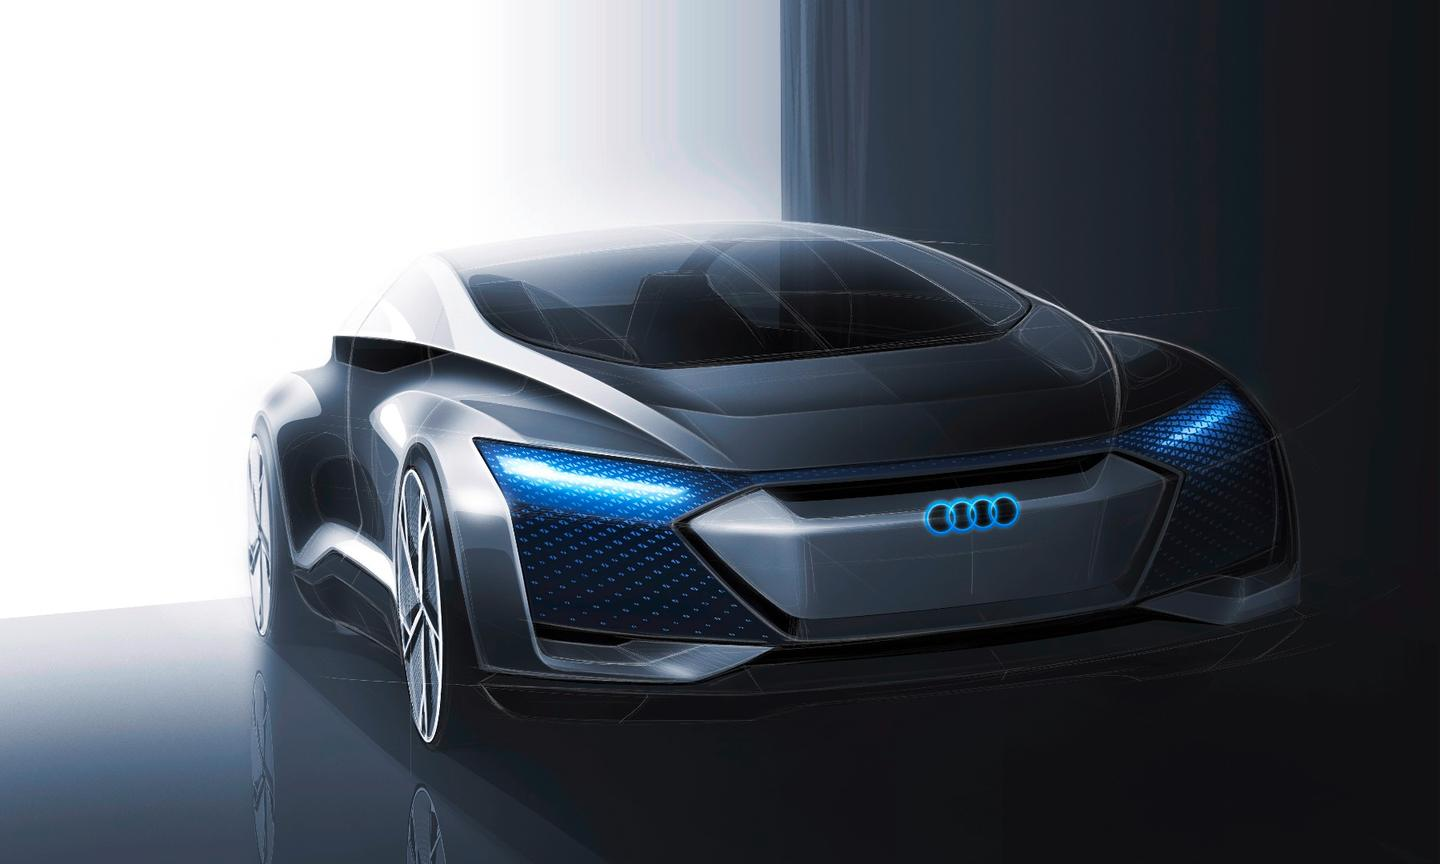 A sketch of the Audi Aicon